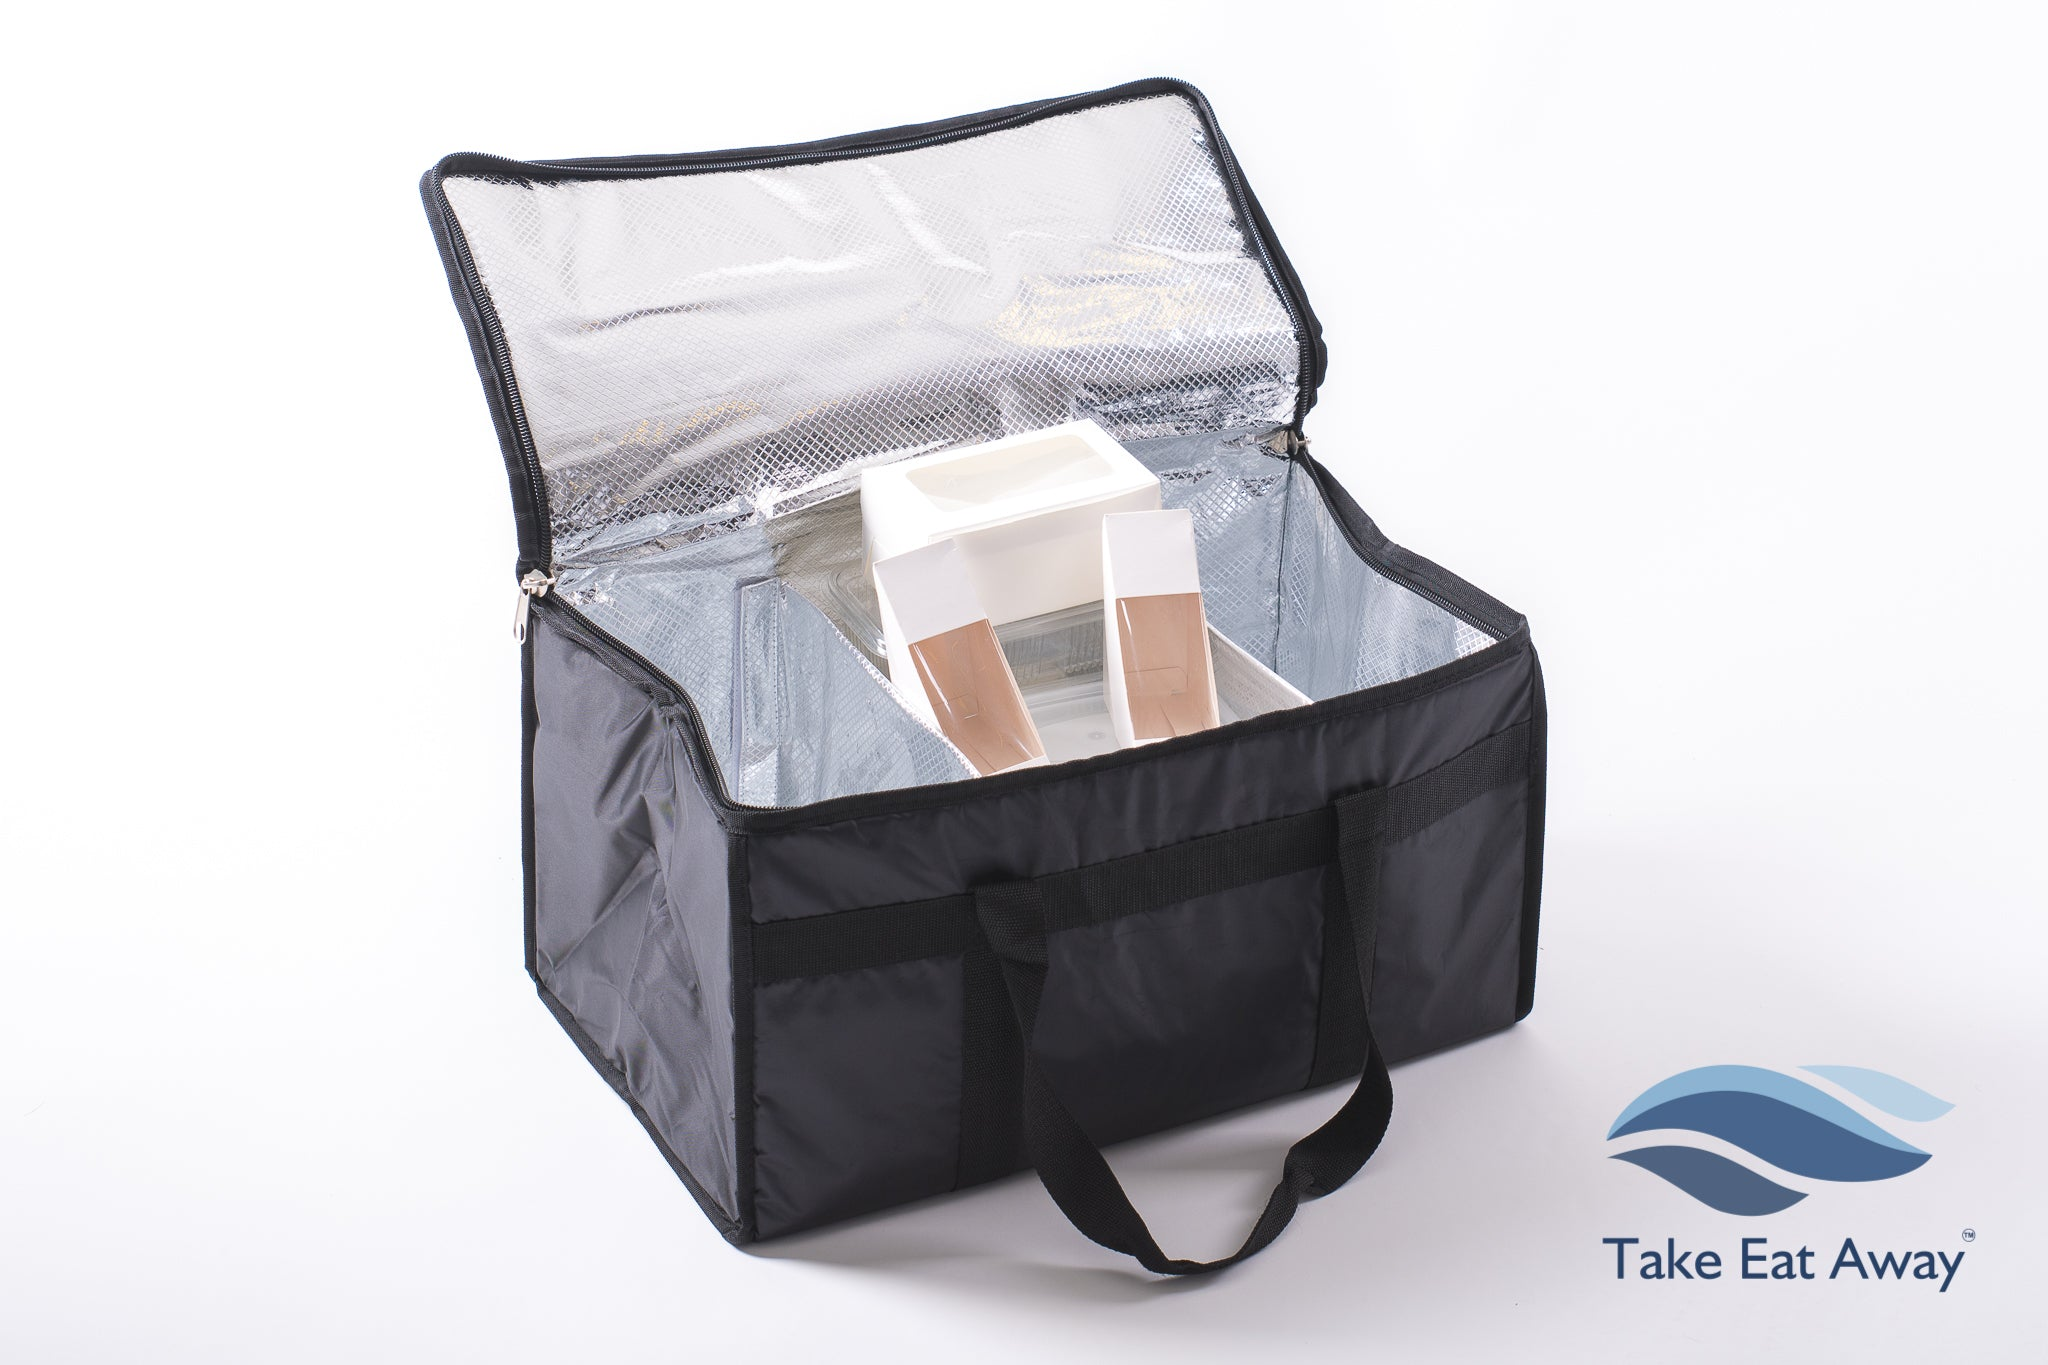 Insulated Cool Food Delivery Bag-39 litres with Dividers Catering Deliveries Bags Extra Large C20